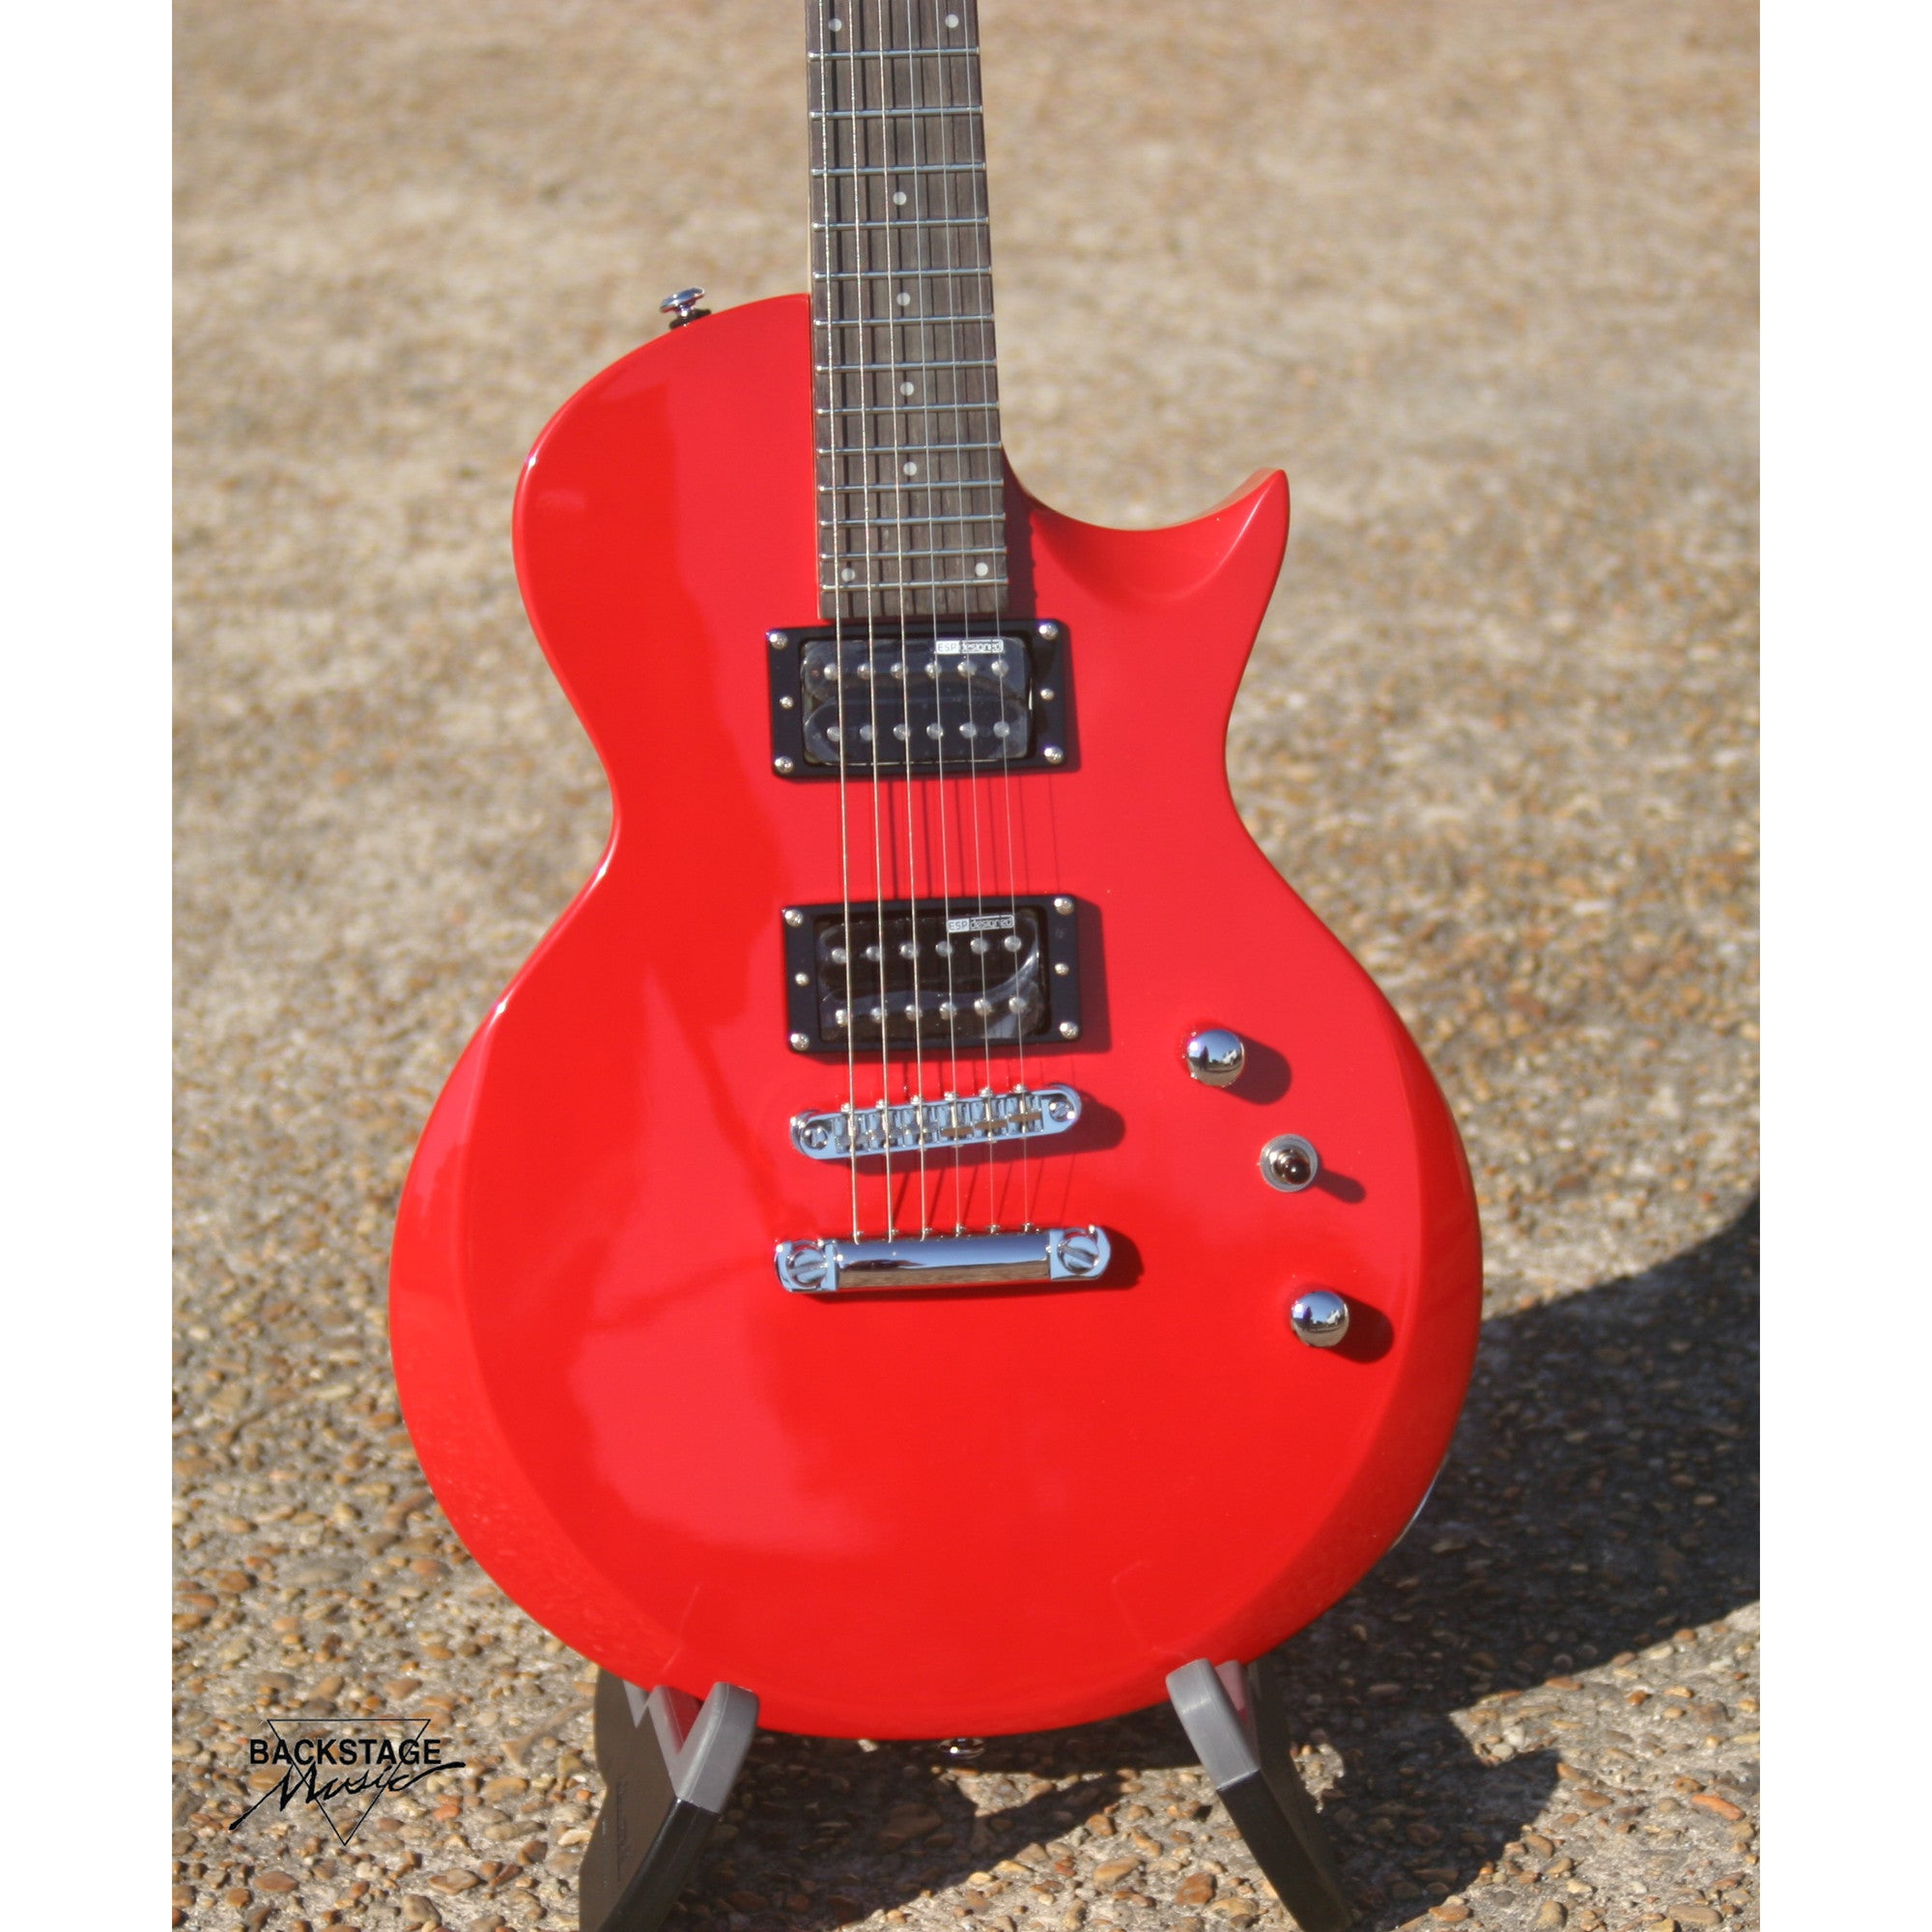 LTD EC-10 in Red, With Gig Bag, at Backstage Music